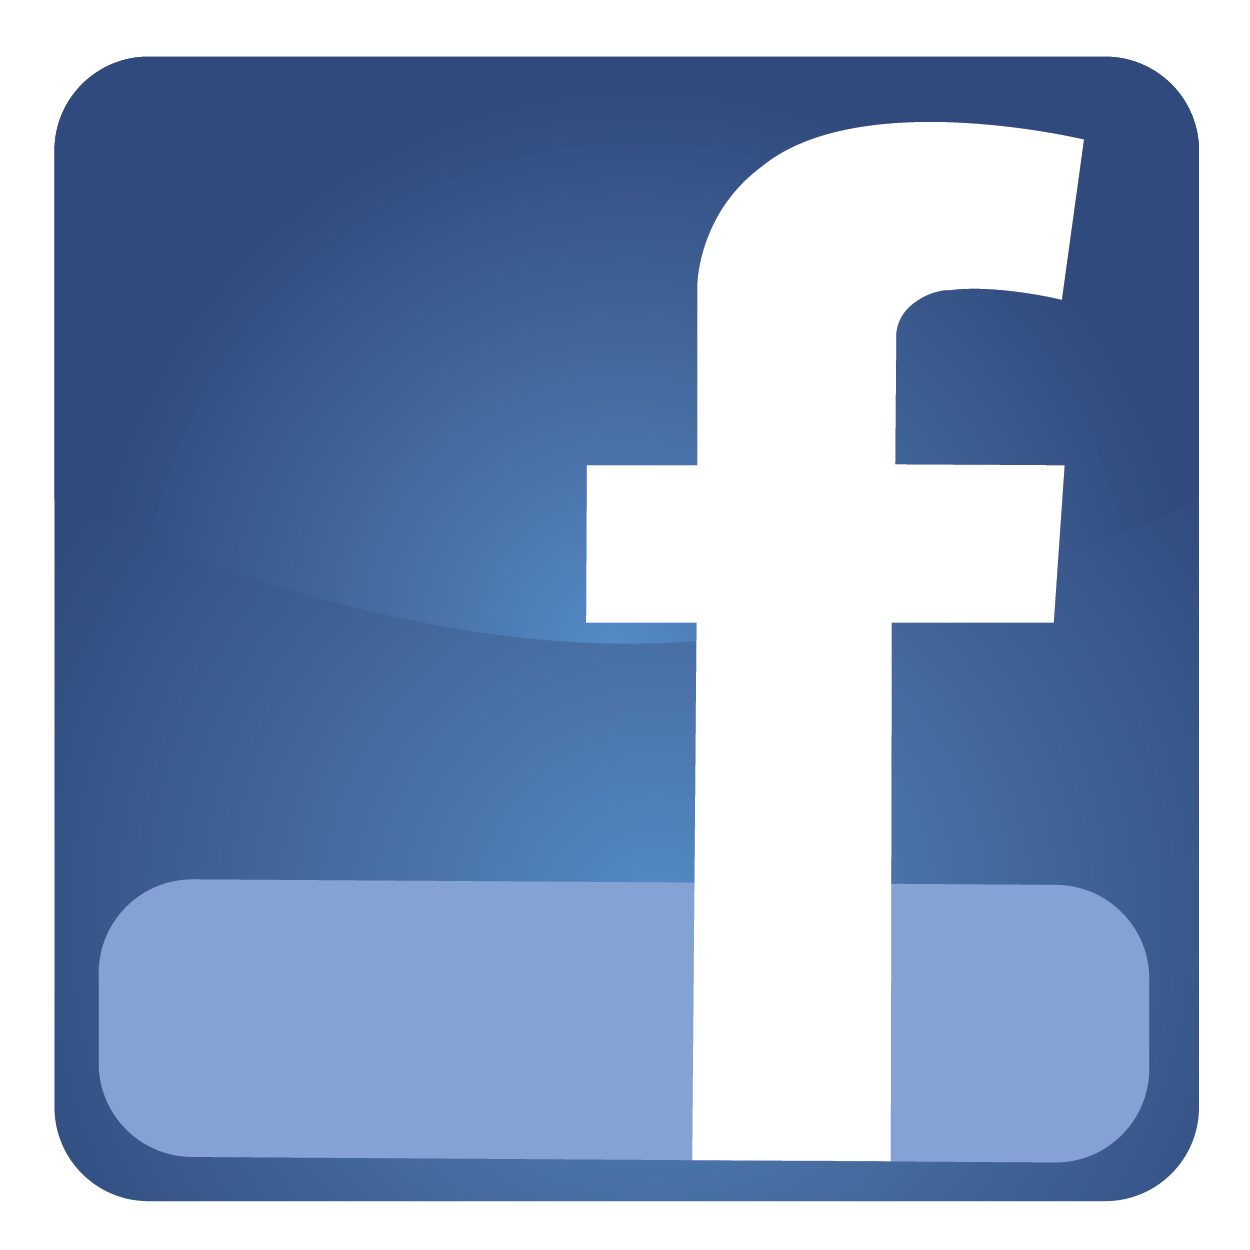 Image result for facebook button transparent background